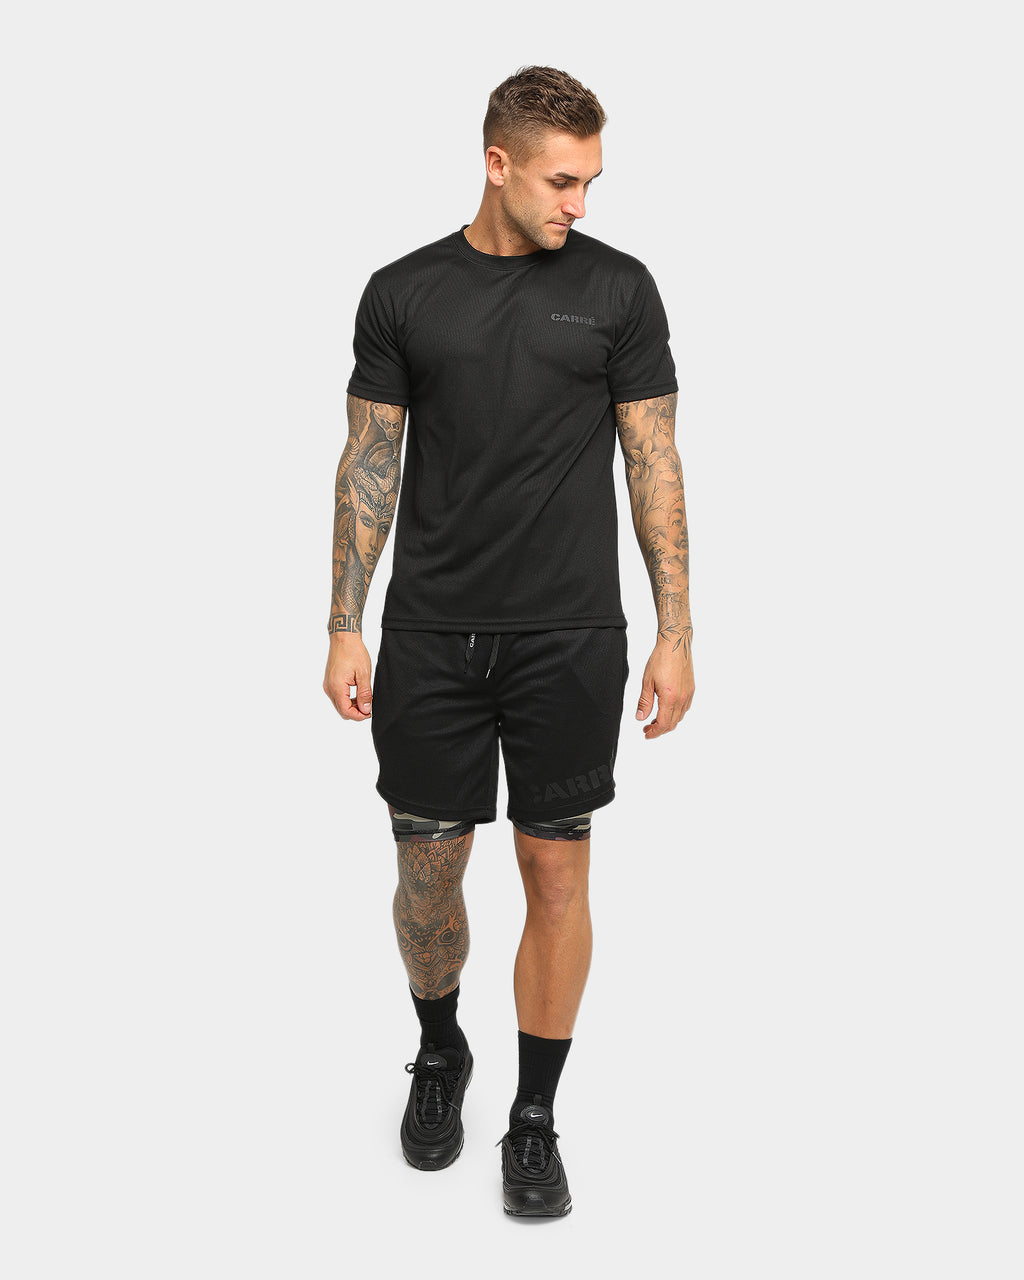 Carré Momentum Active Short Black/Camo